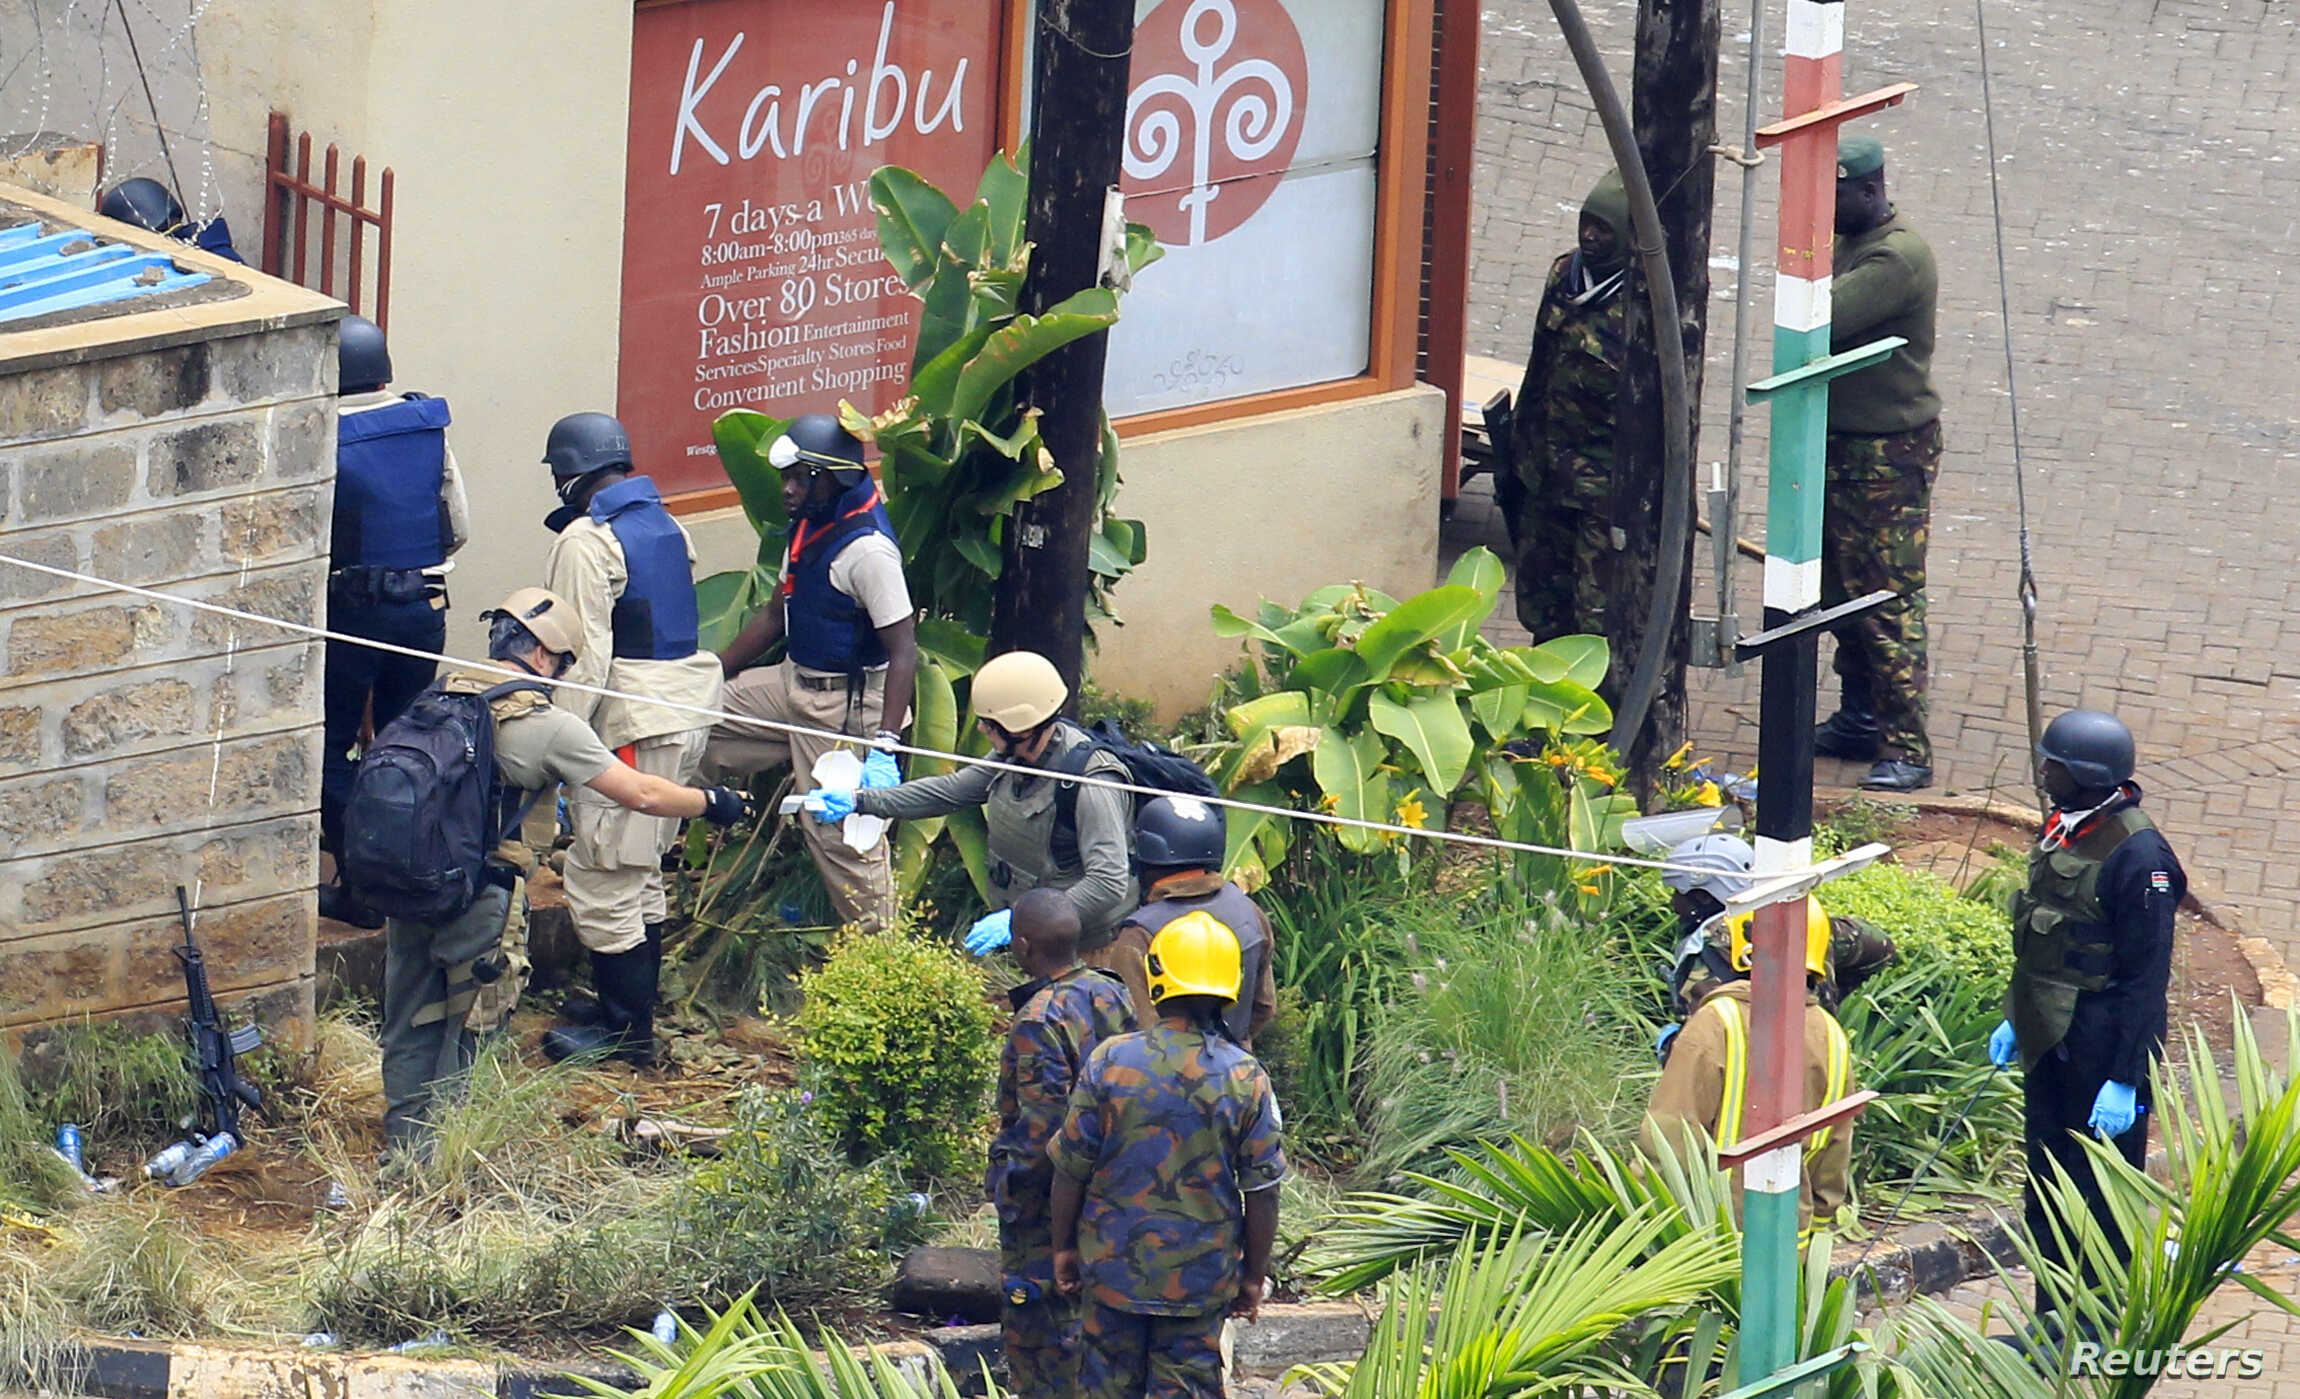 Foreign forensic experts, flanked by Kenyan military personnel, check the perimeter walls around Westgate shopping mall in Nairobi September 25, 2013. Bomb disposal experts and investigators searched through the wreckage of the Kenyan shopping mall o